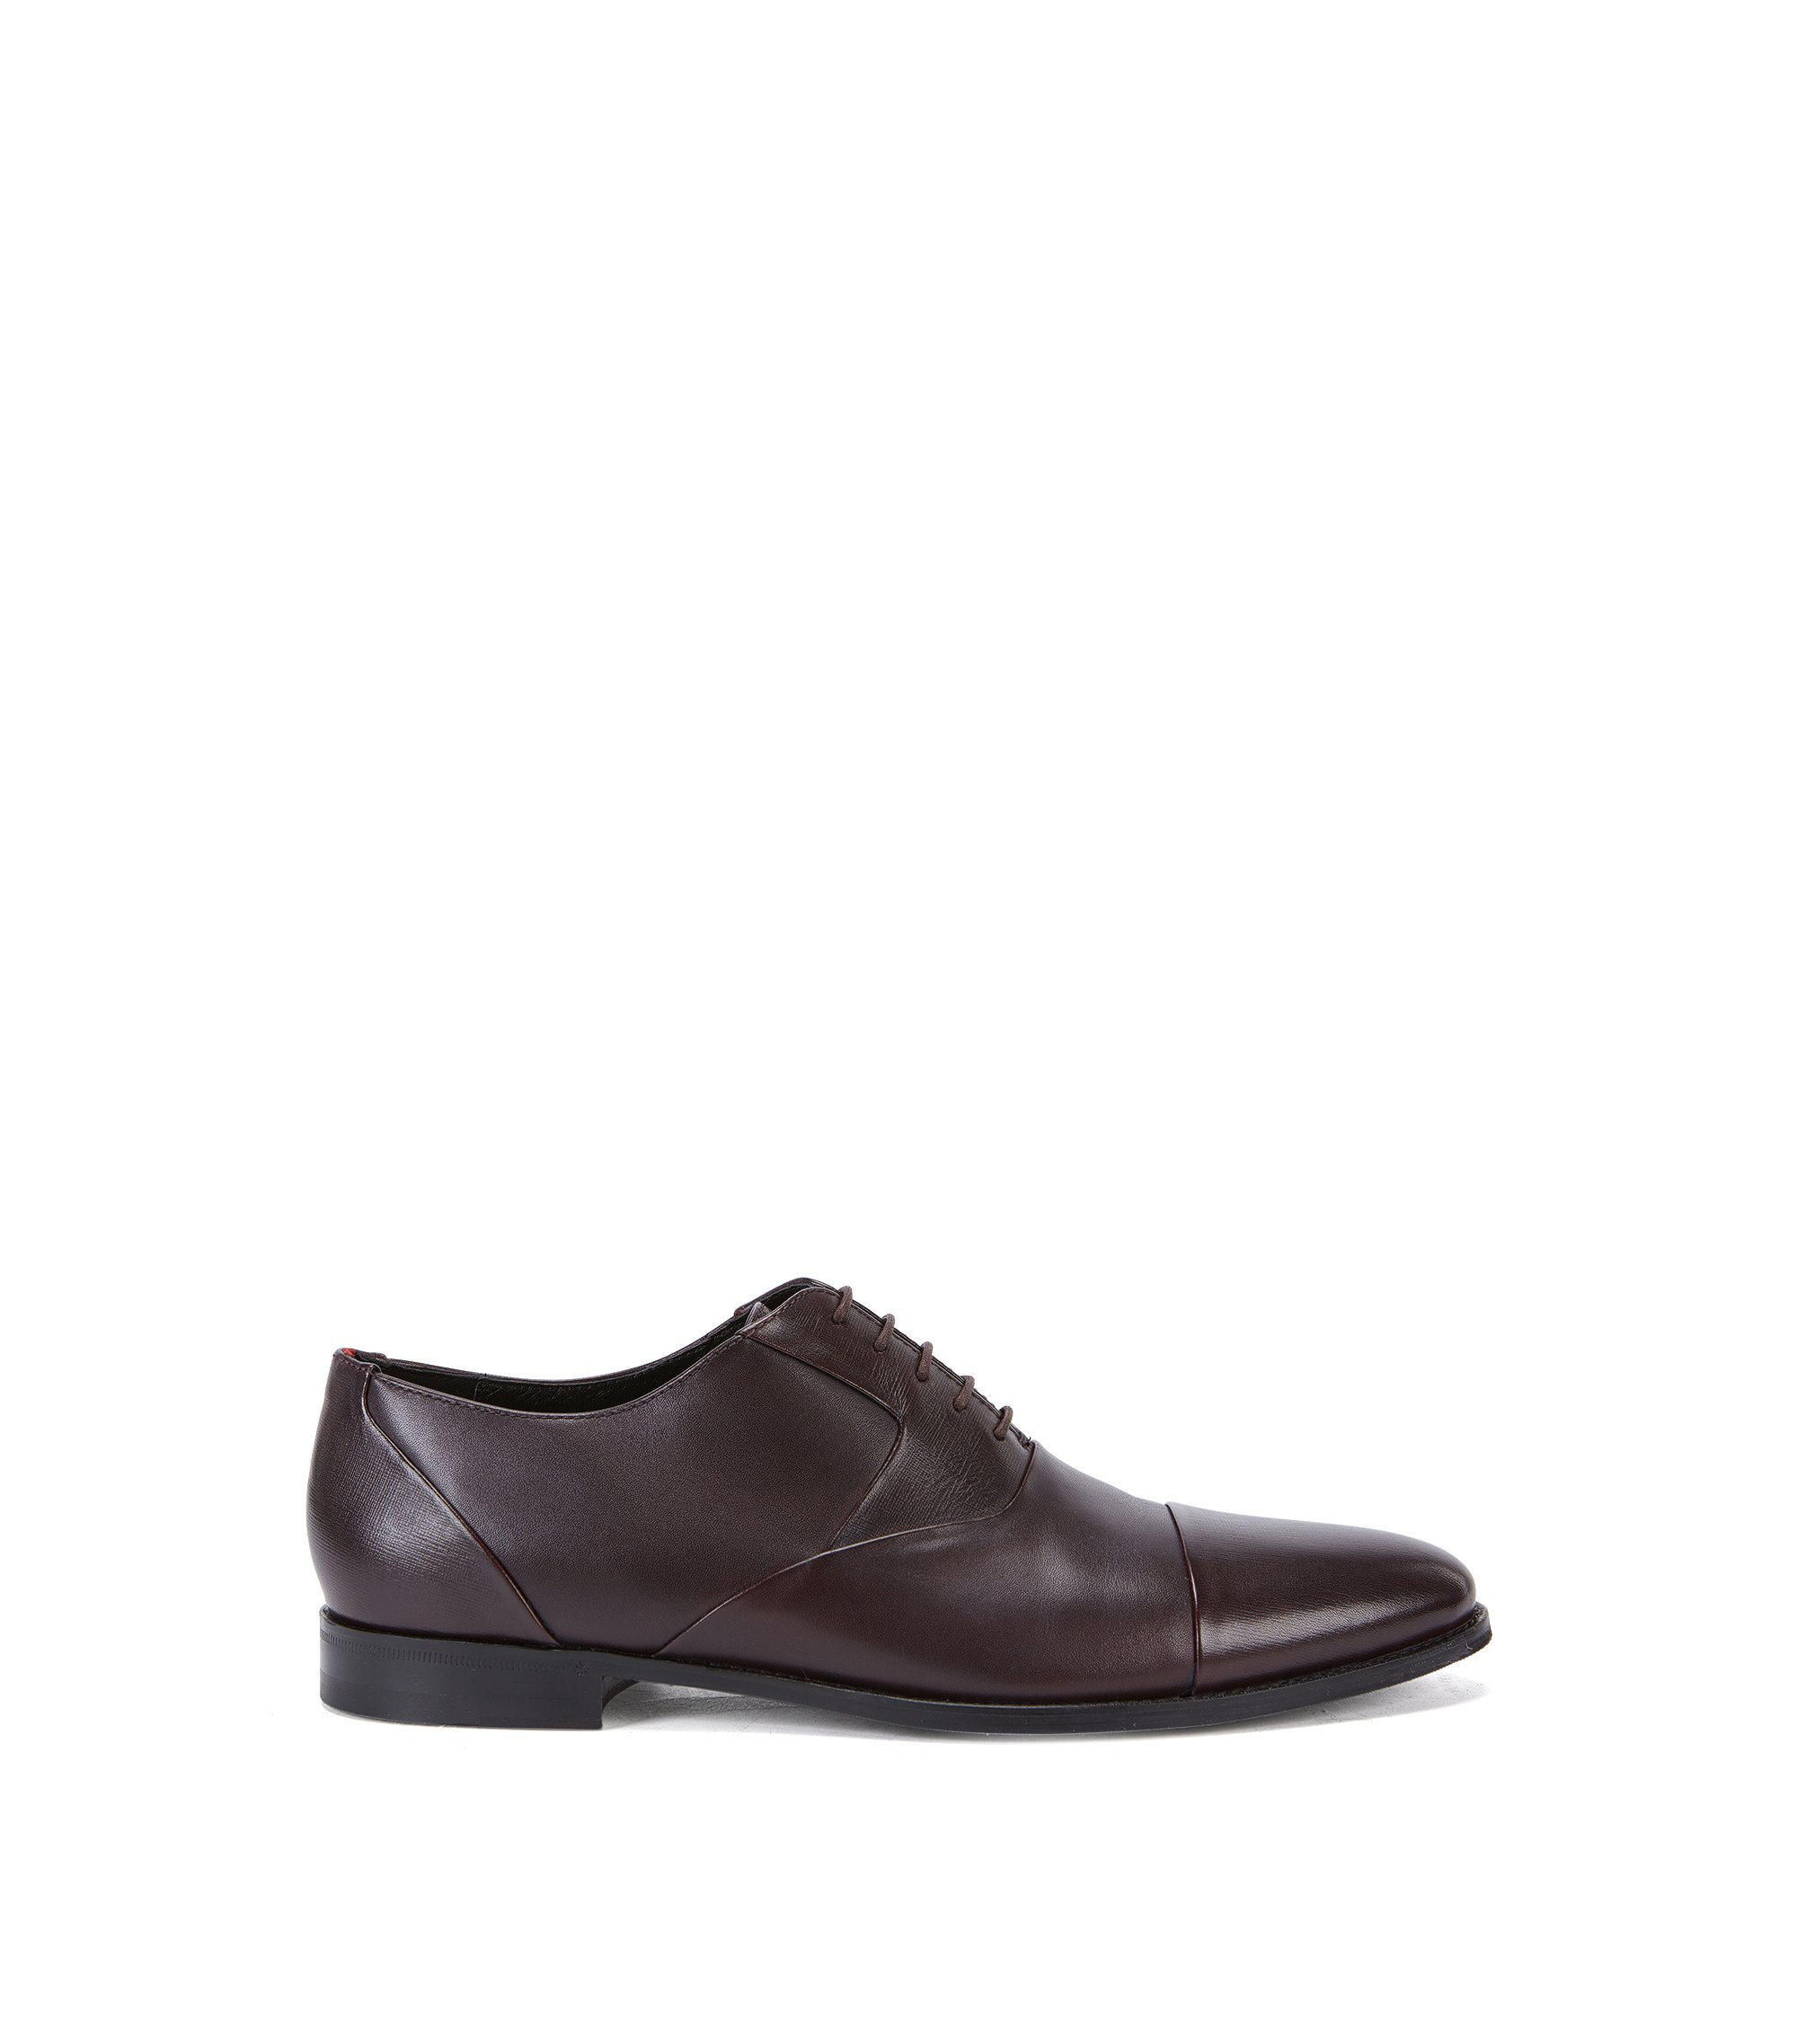 Leather Oxford shoes with Saffiano detail, Dark Red